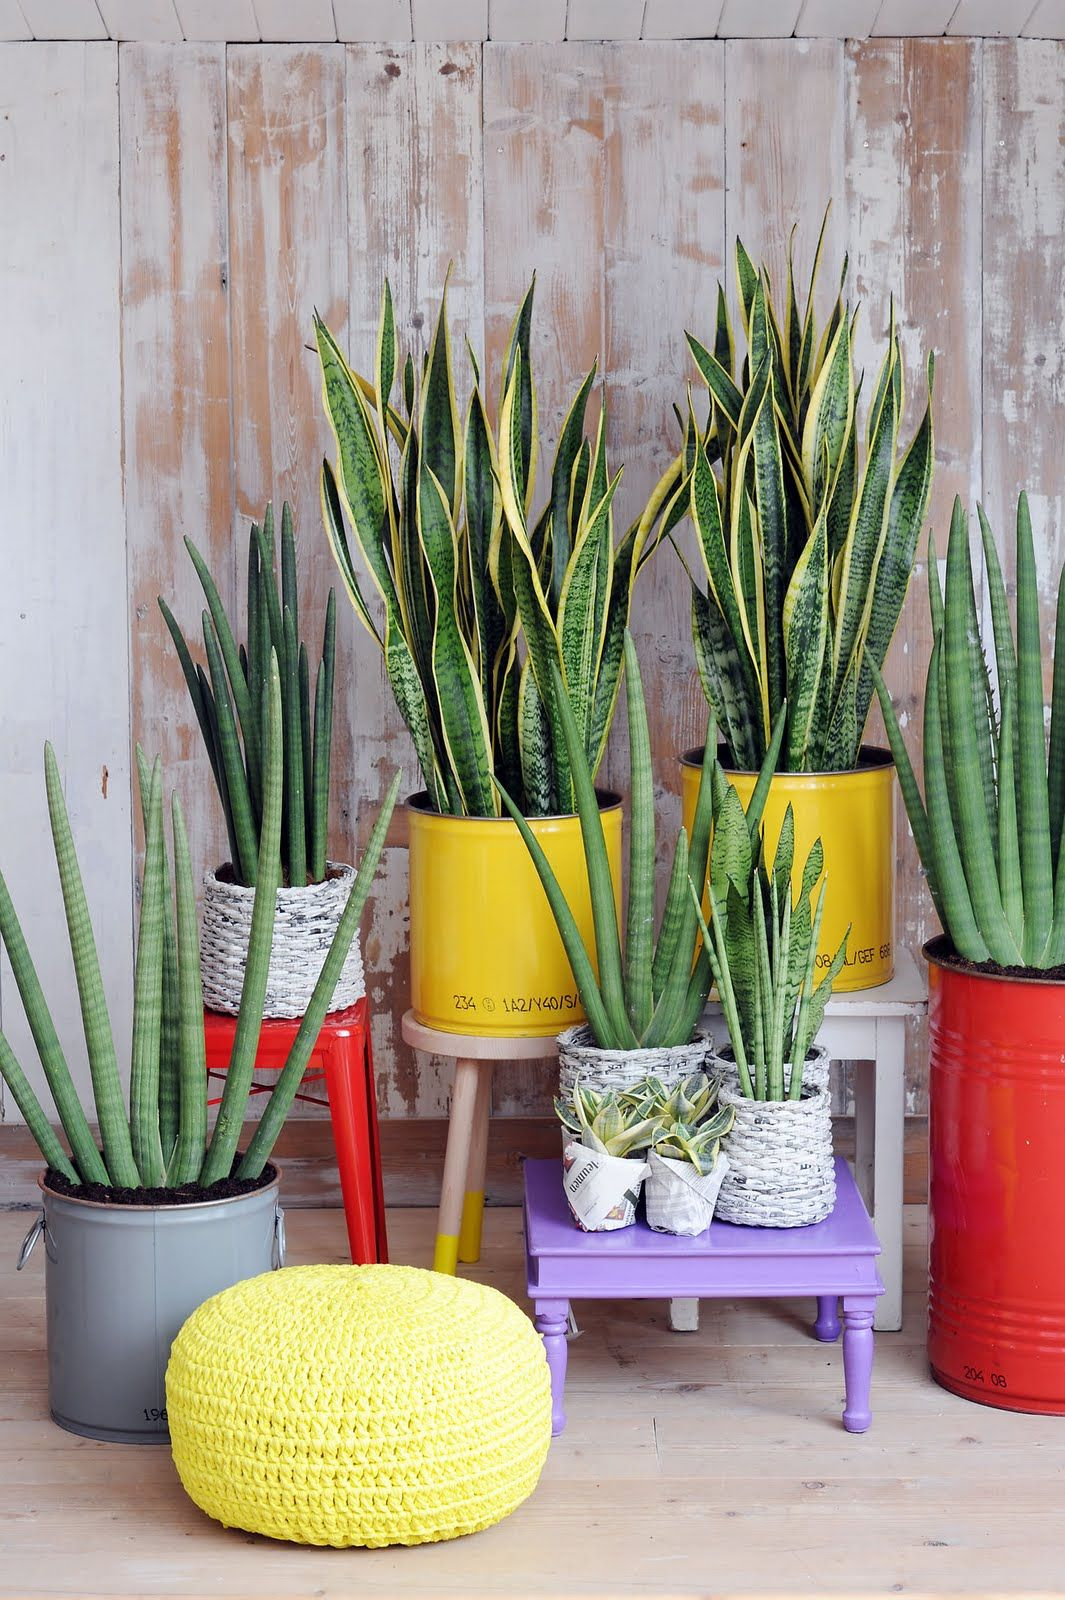 Snake Plants Sansevieria Trifasciata In Back Yellow Pots All Others Cylindrical